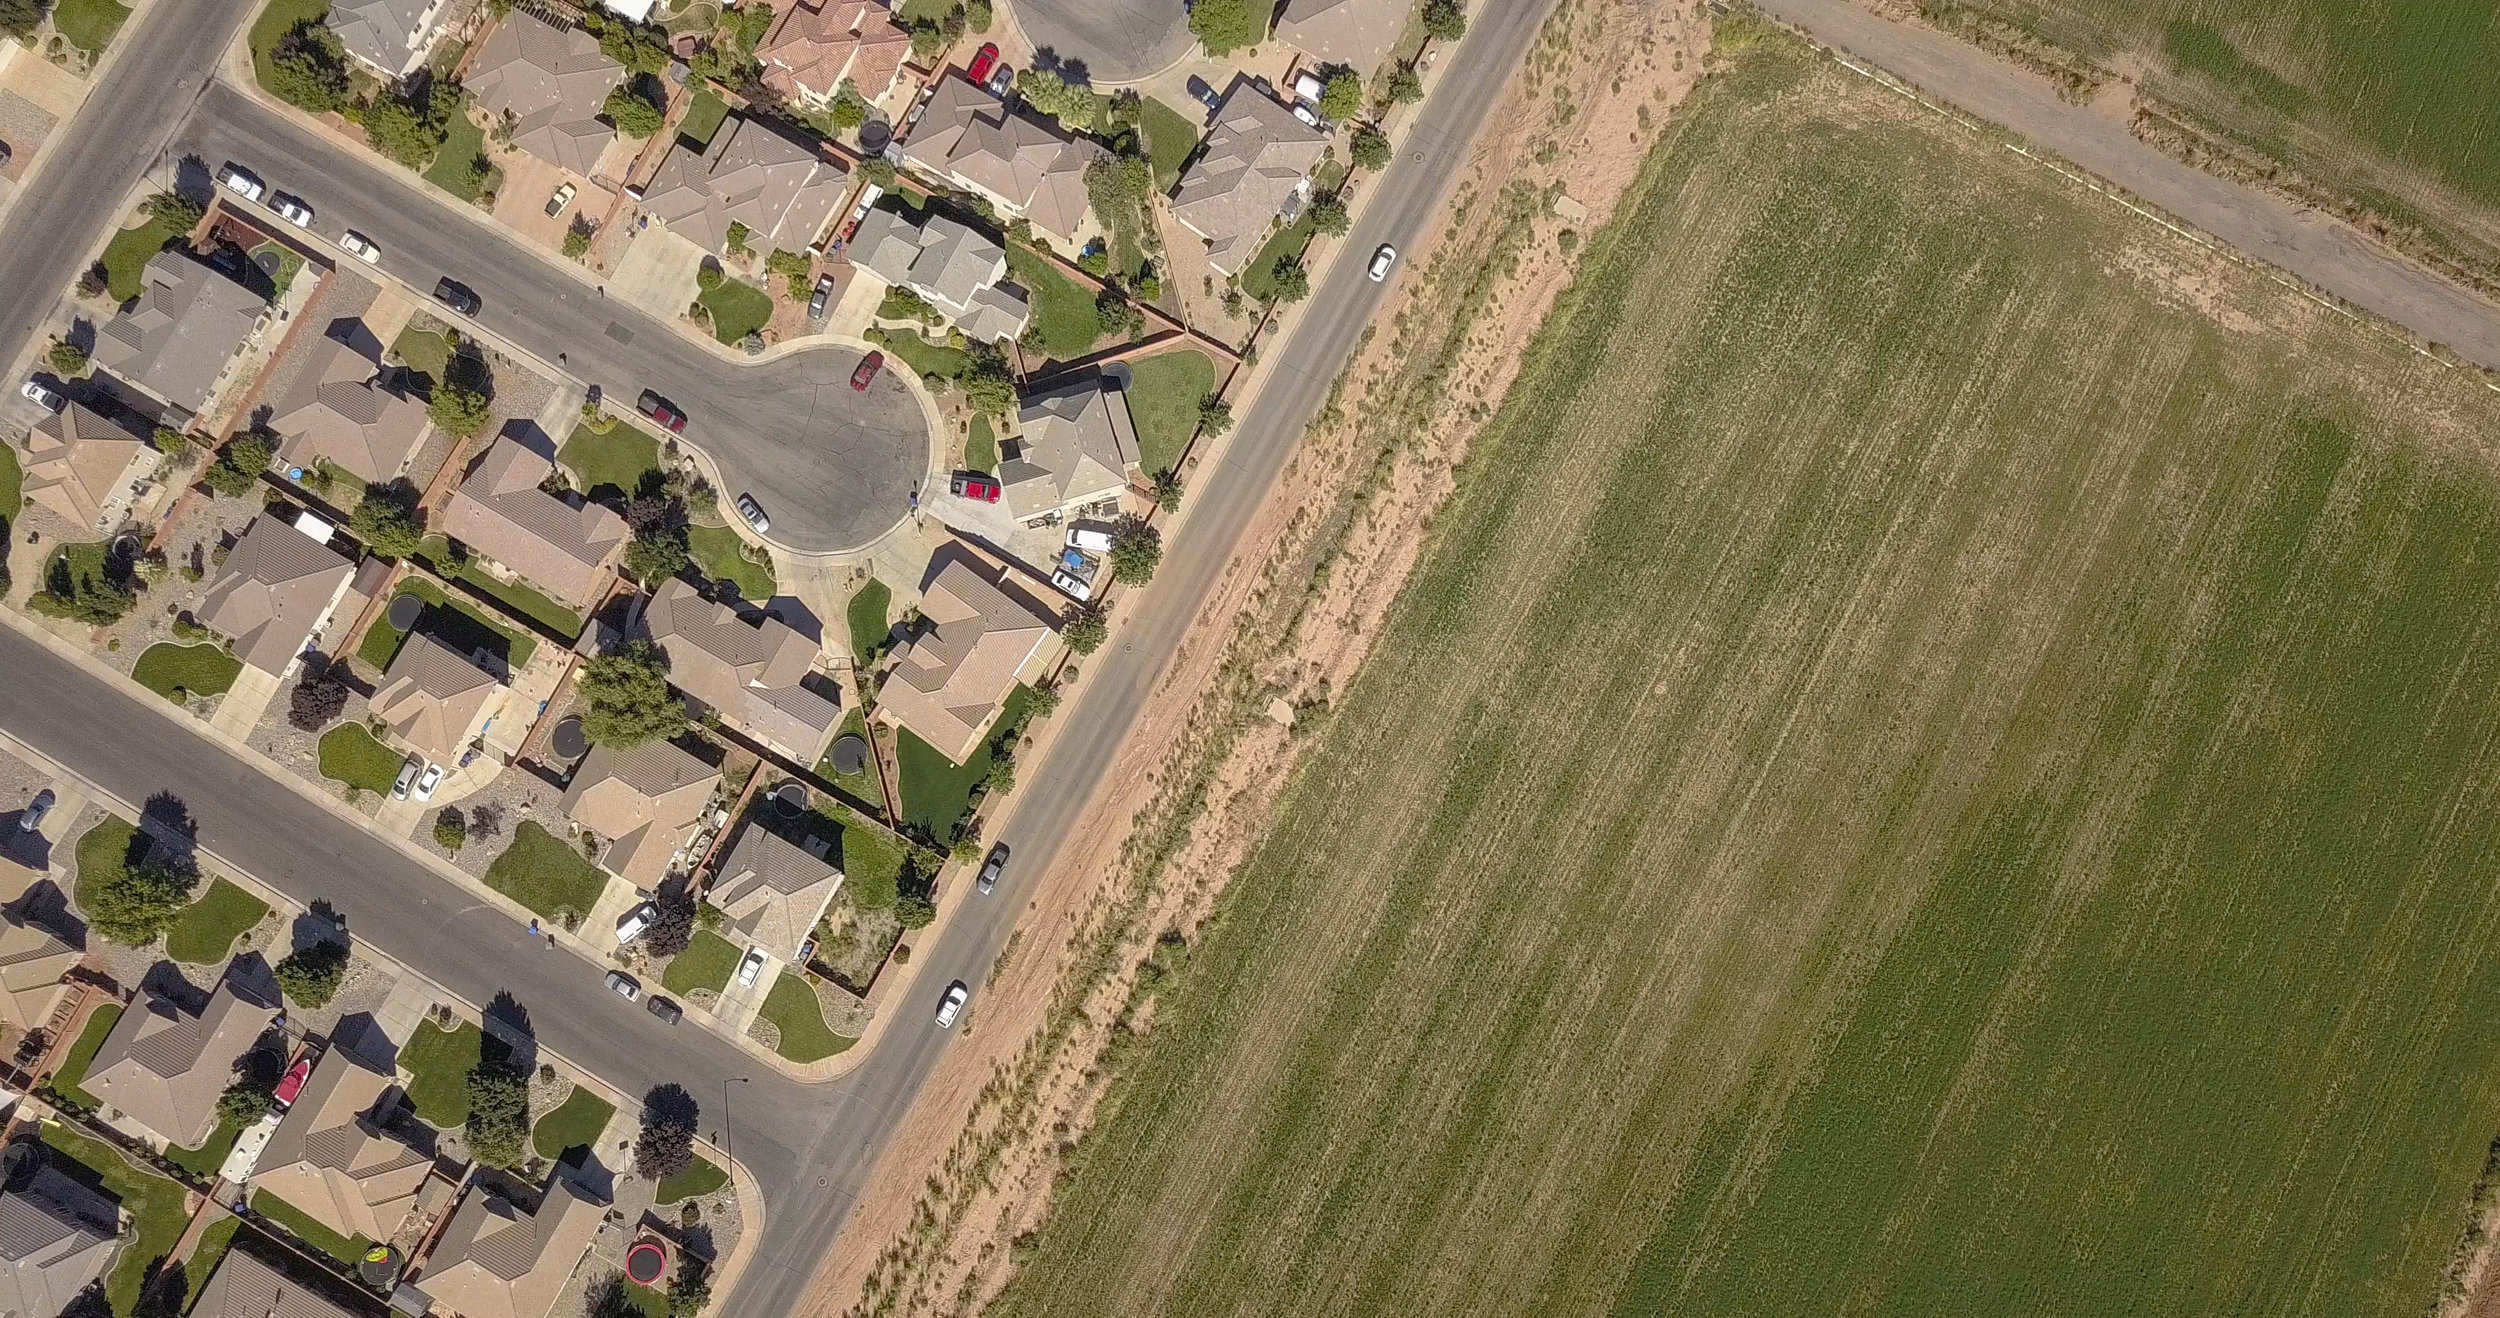 Irrigated farmland is being replaced by homes, strip malls, streets and parking lots which use much less water or no water whatsoever.